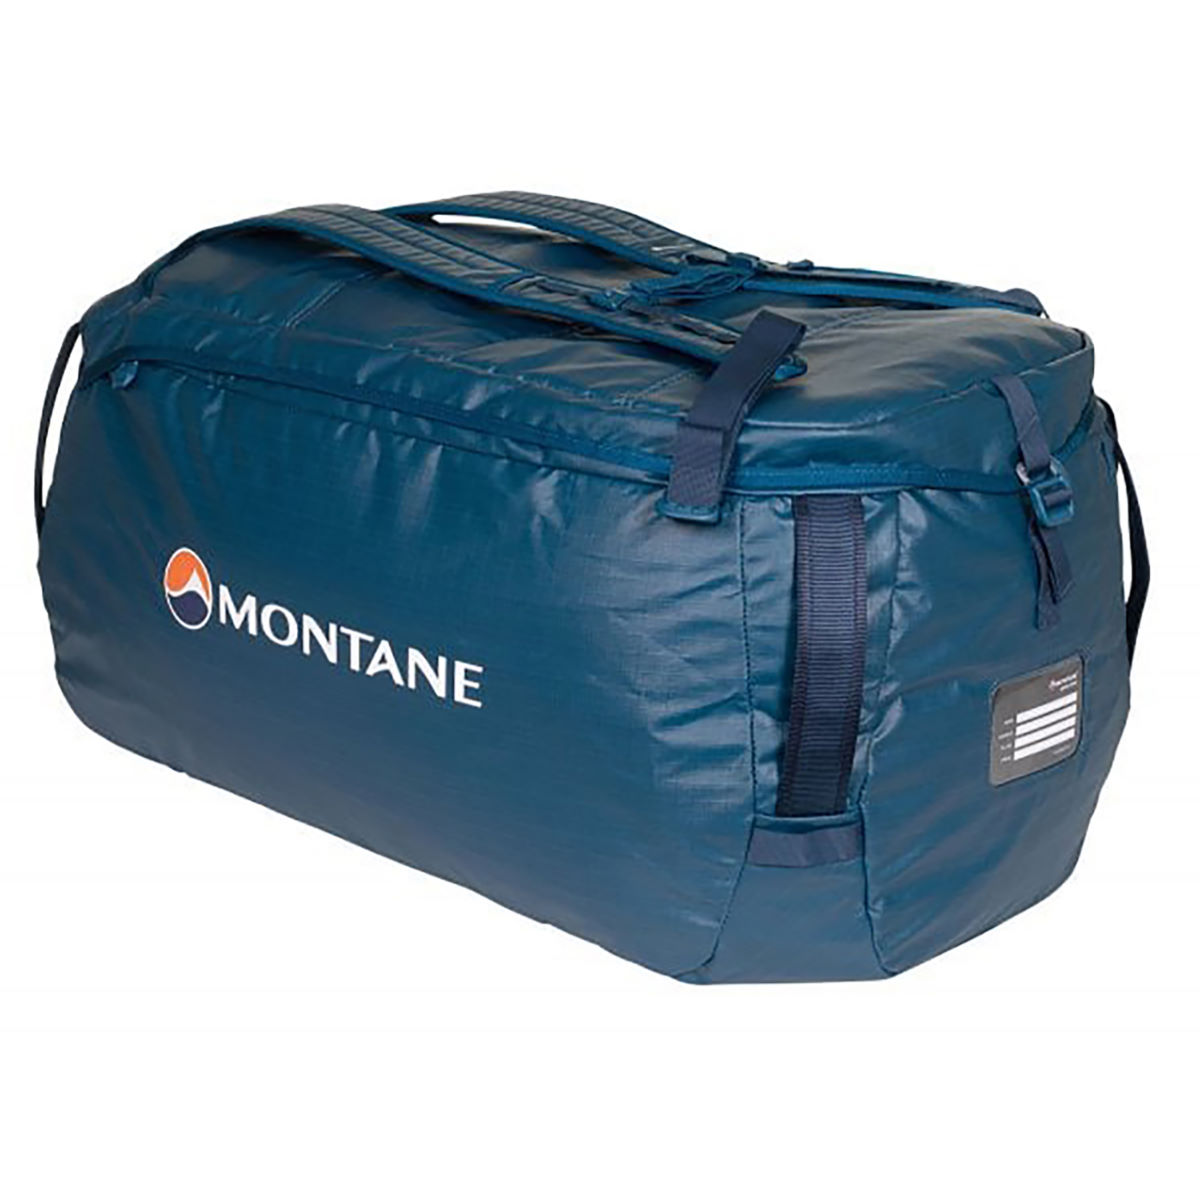 Montane Montane Transition 40 Duffle Bag   Transition Bags